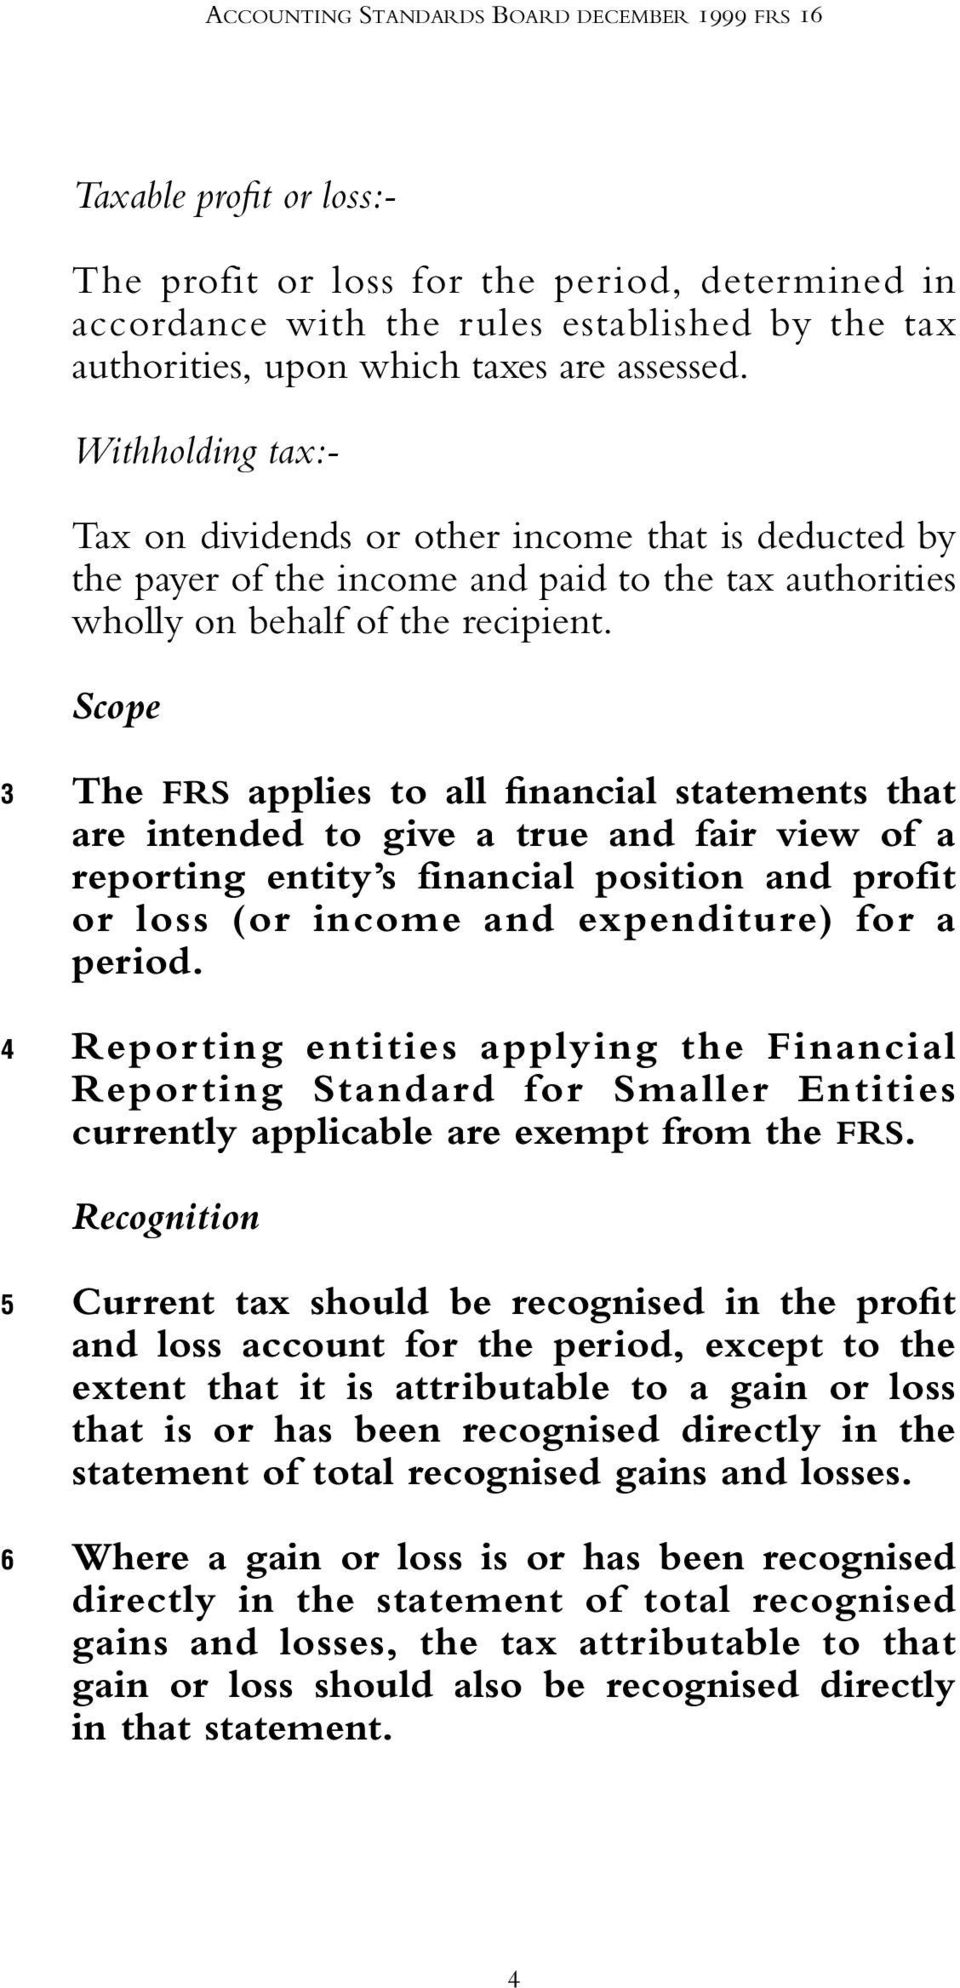 Scope 3 4 The FRS applies to all financial statements that are intended to give a true and fair view of a reporting entity s financial position and profit or loss (or income and expenditure) for a